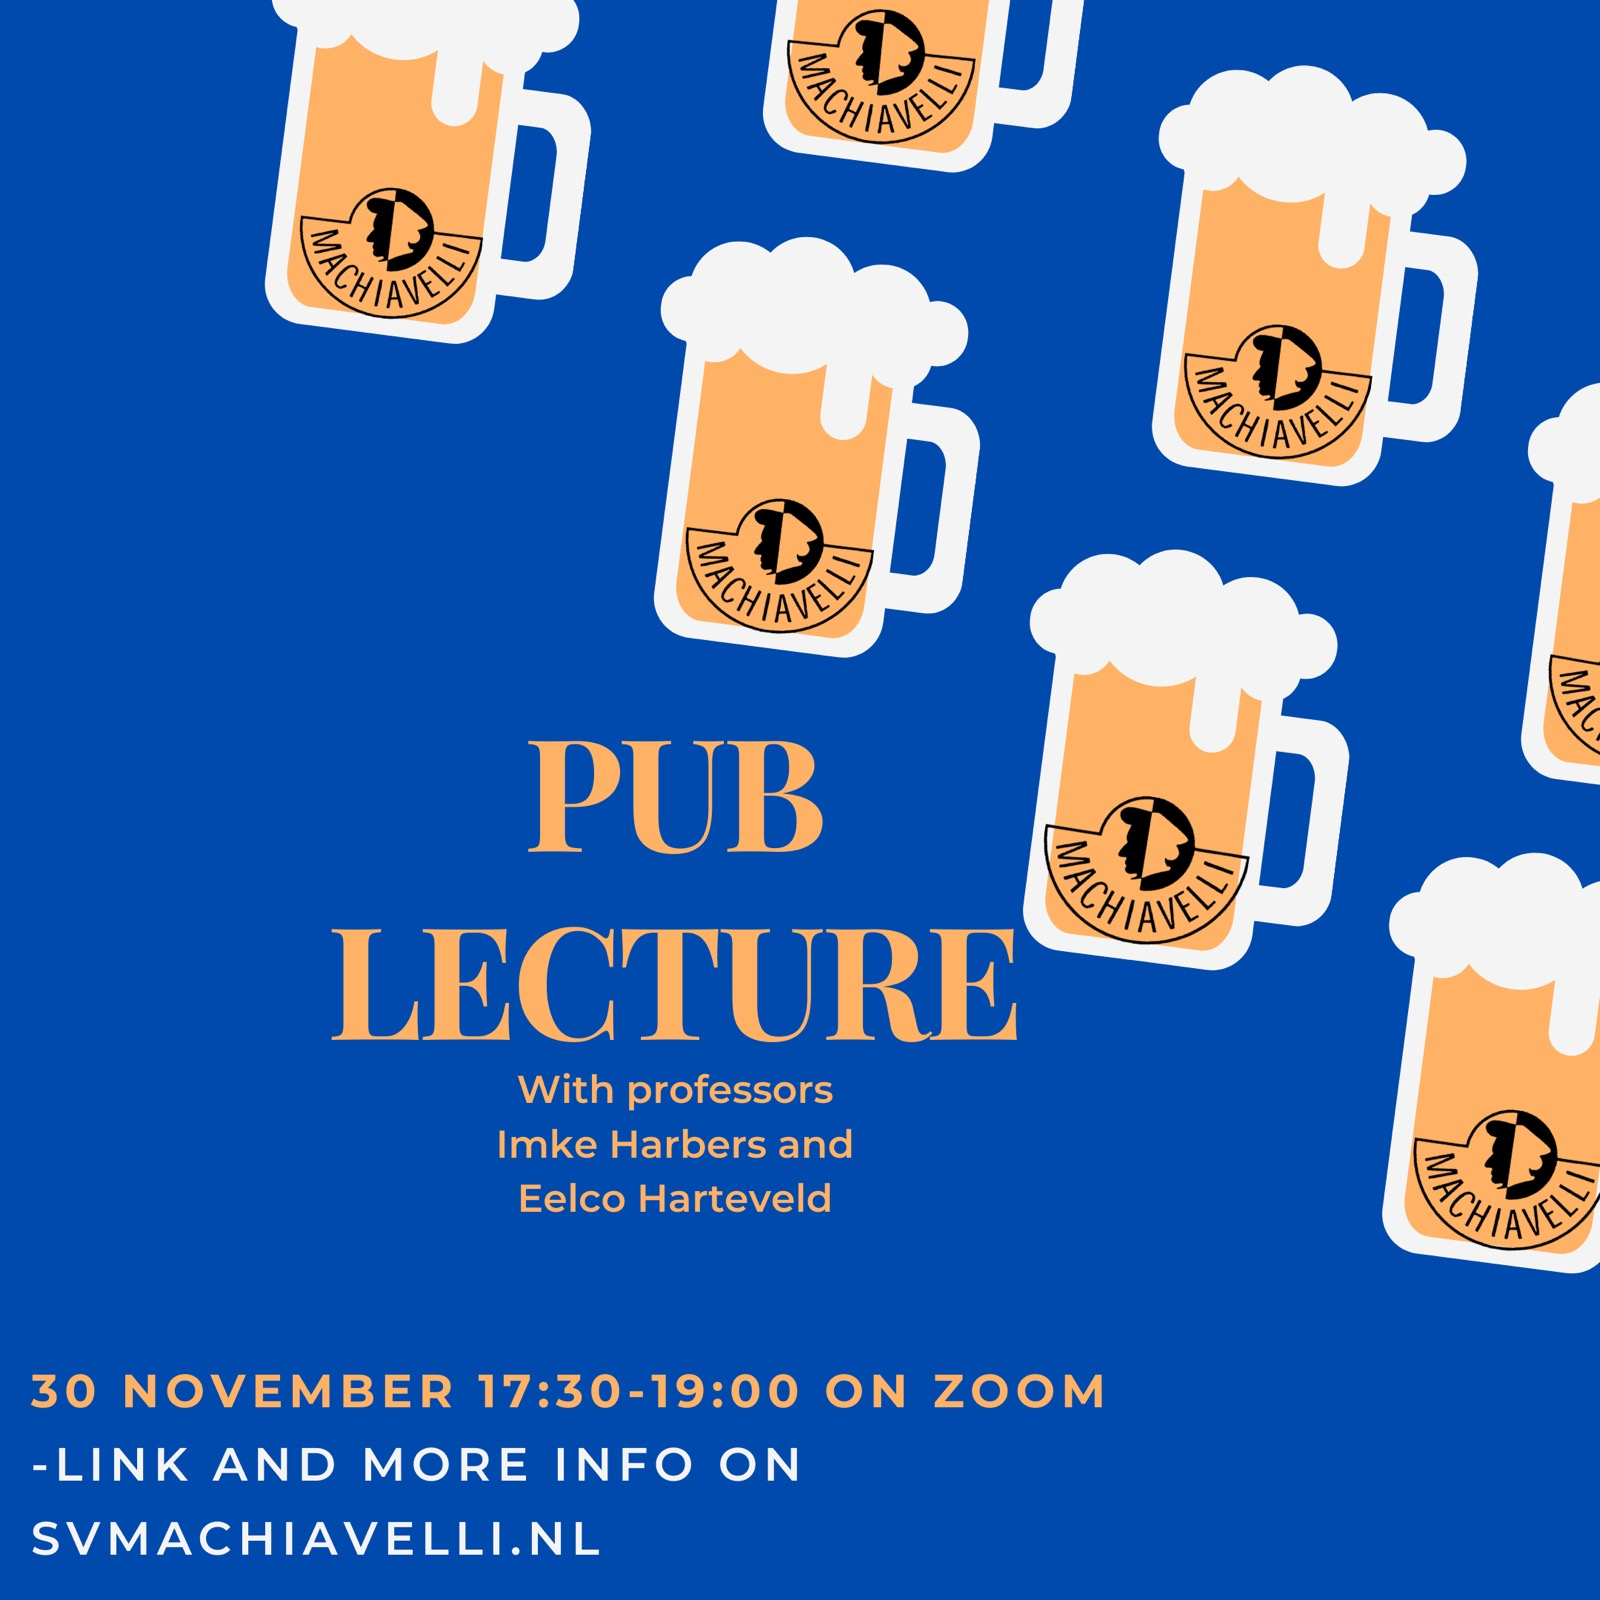 First Pub Lecture